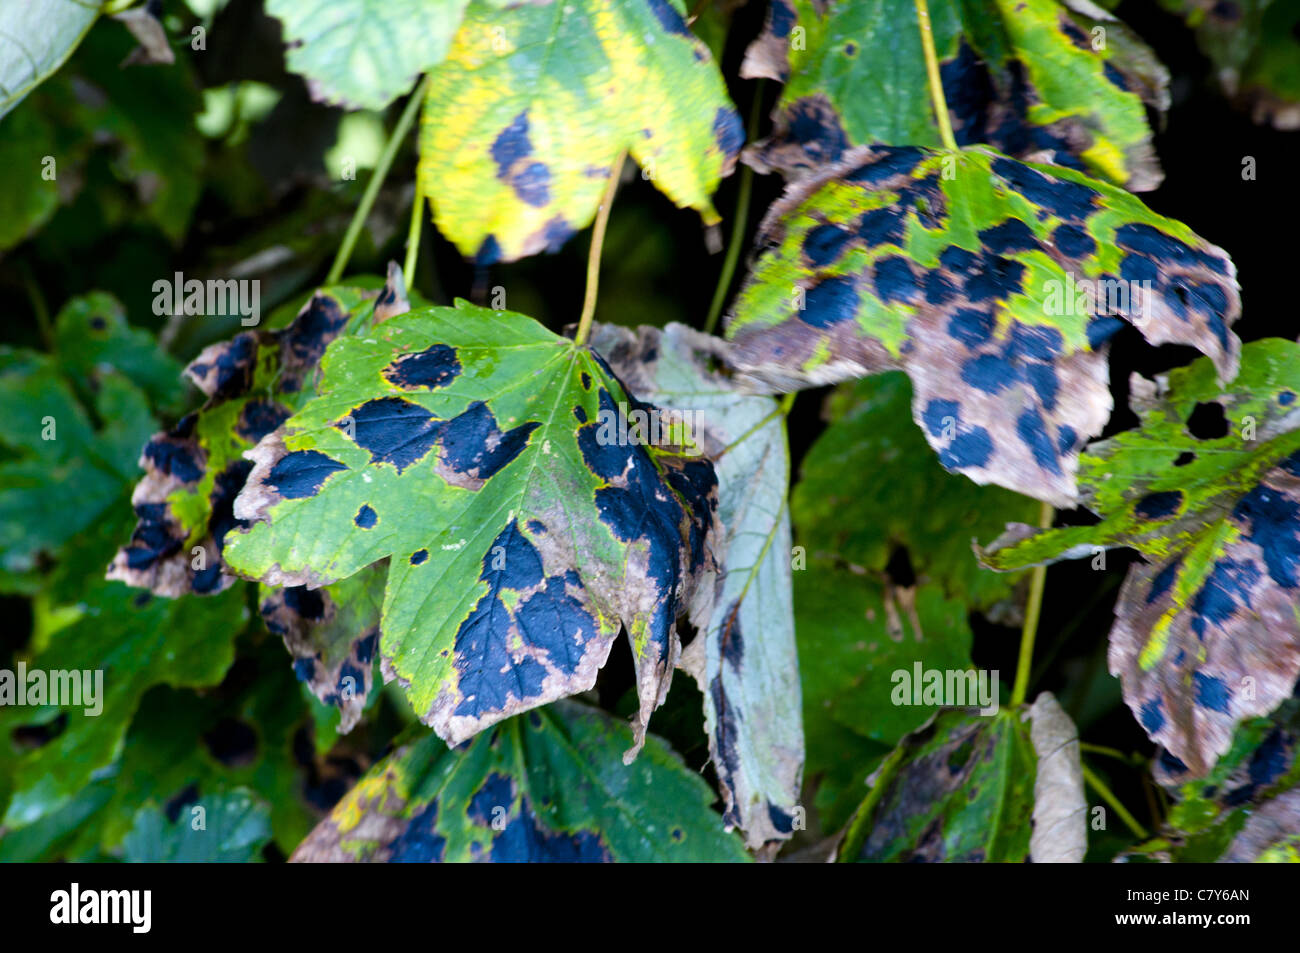 Sycamore leaf with black tar spot  disease - Stock Image